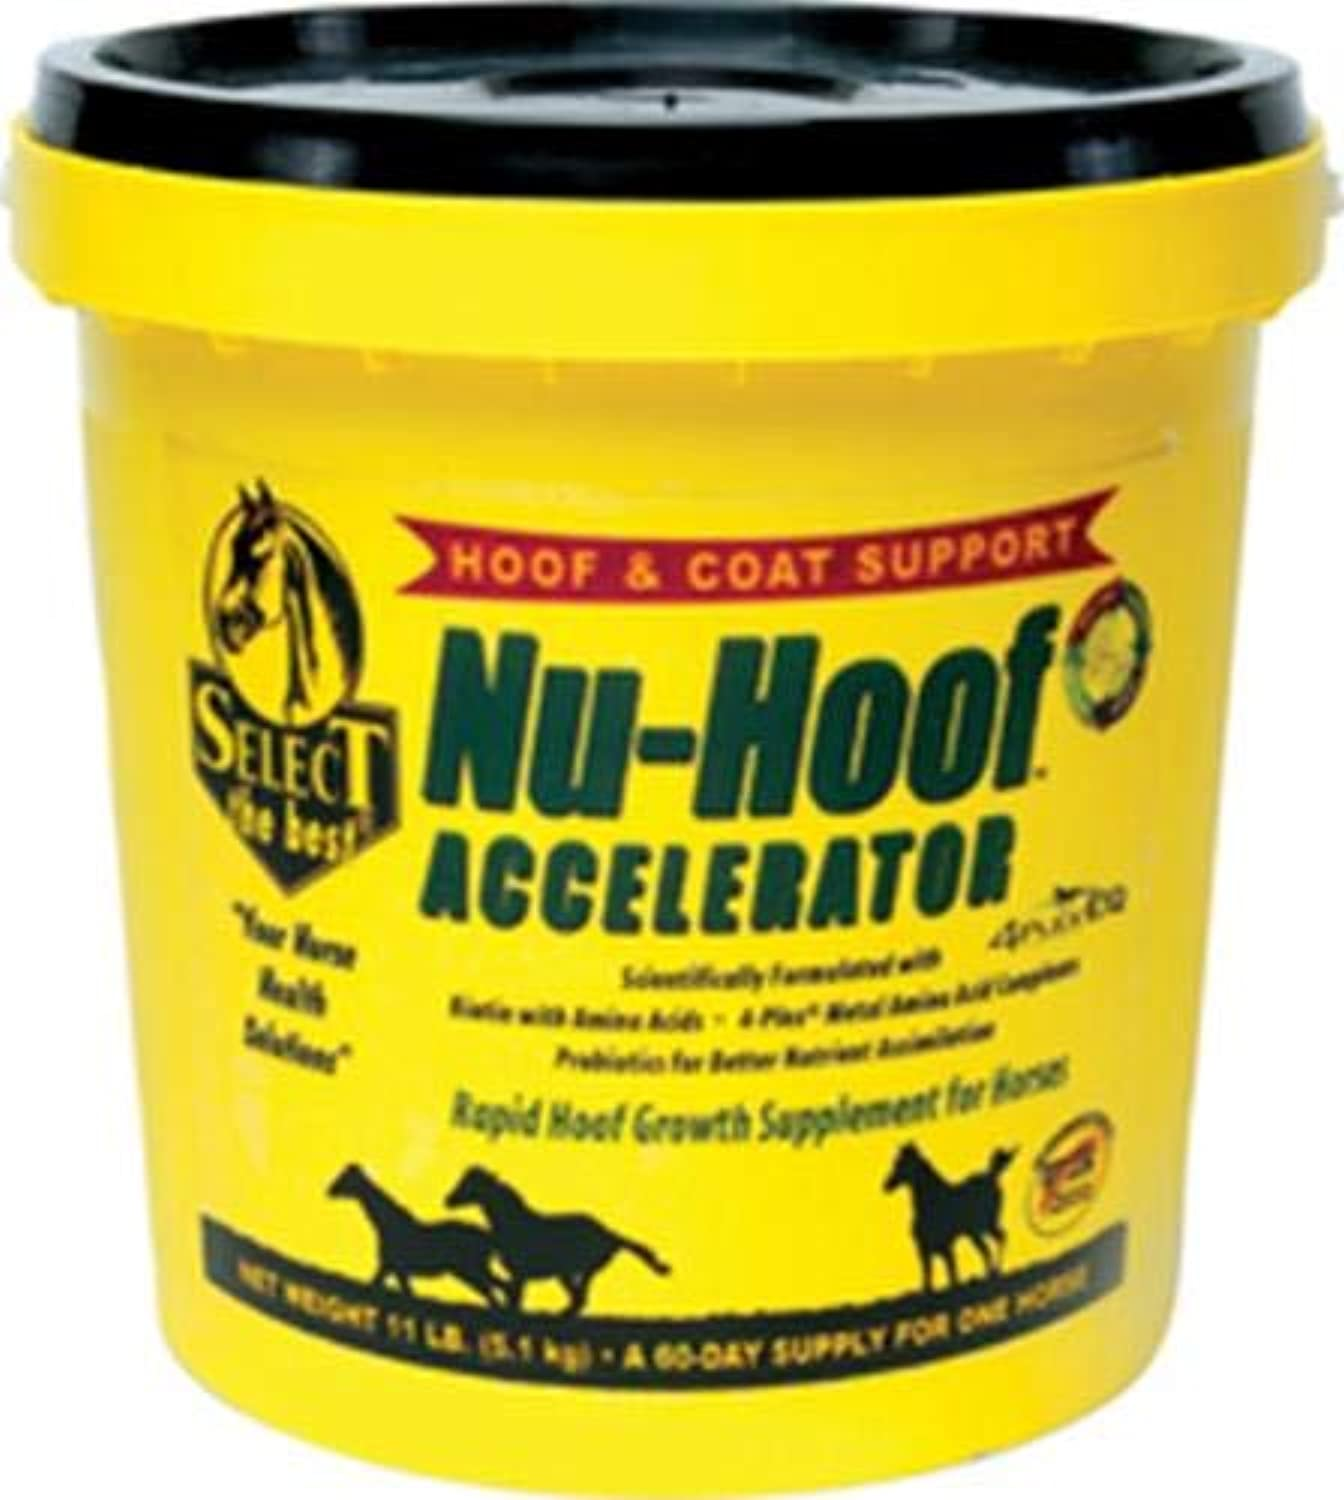 RICHDEL 784299591103 NuHoof Accelerator Hoof & Coat Support for Horses, 11 lb